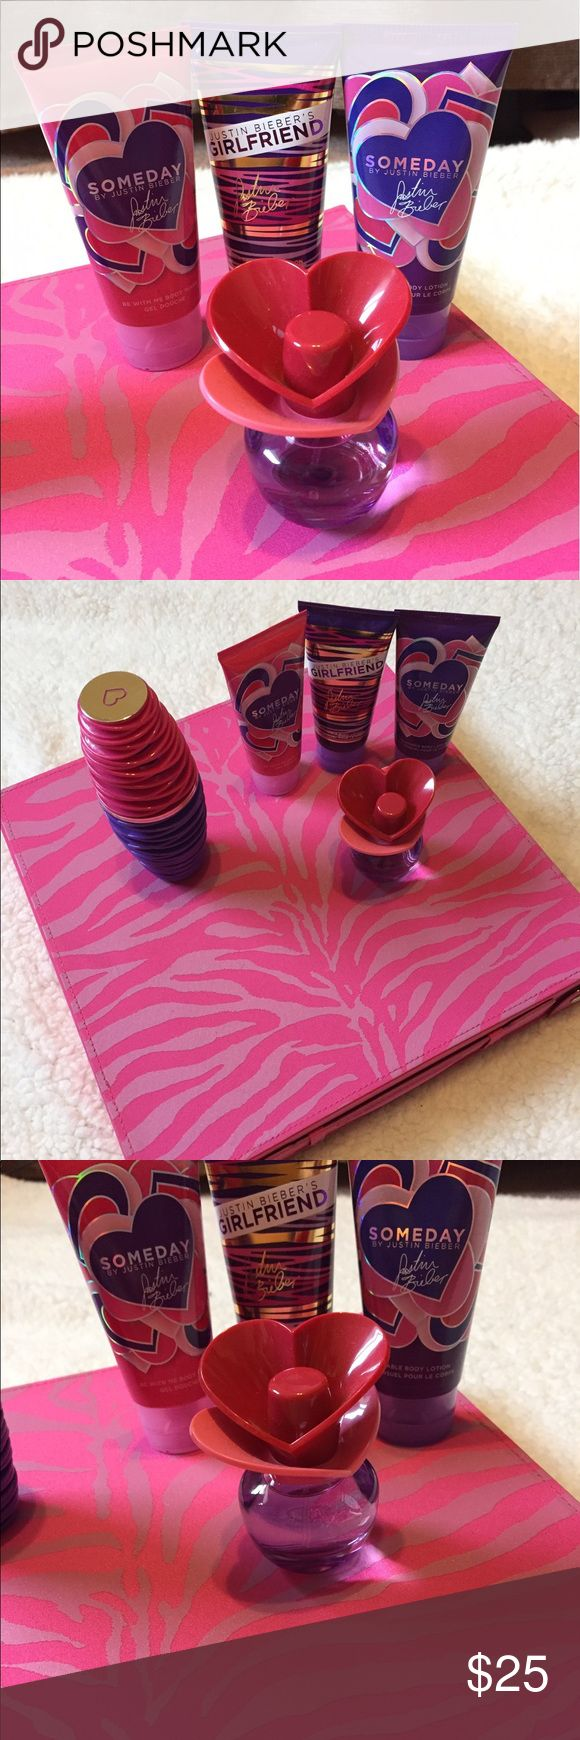 Justin Bieber lotion, body wash, and perfume 5 items for one price! This comes with the Justin Bieber Someday  body wash and Someday body lotion as well as the Someday perfume! I'm also including Justin Bieber's Girlfriend body lotion with the Girlfriend perfume! All of this has never been used! Other